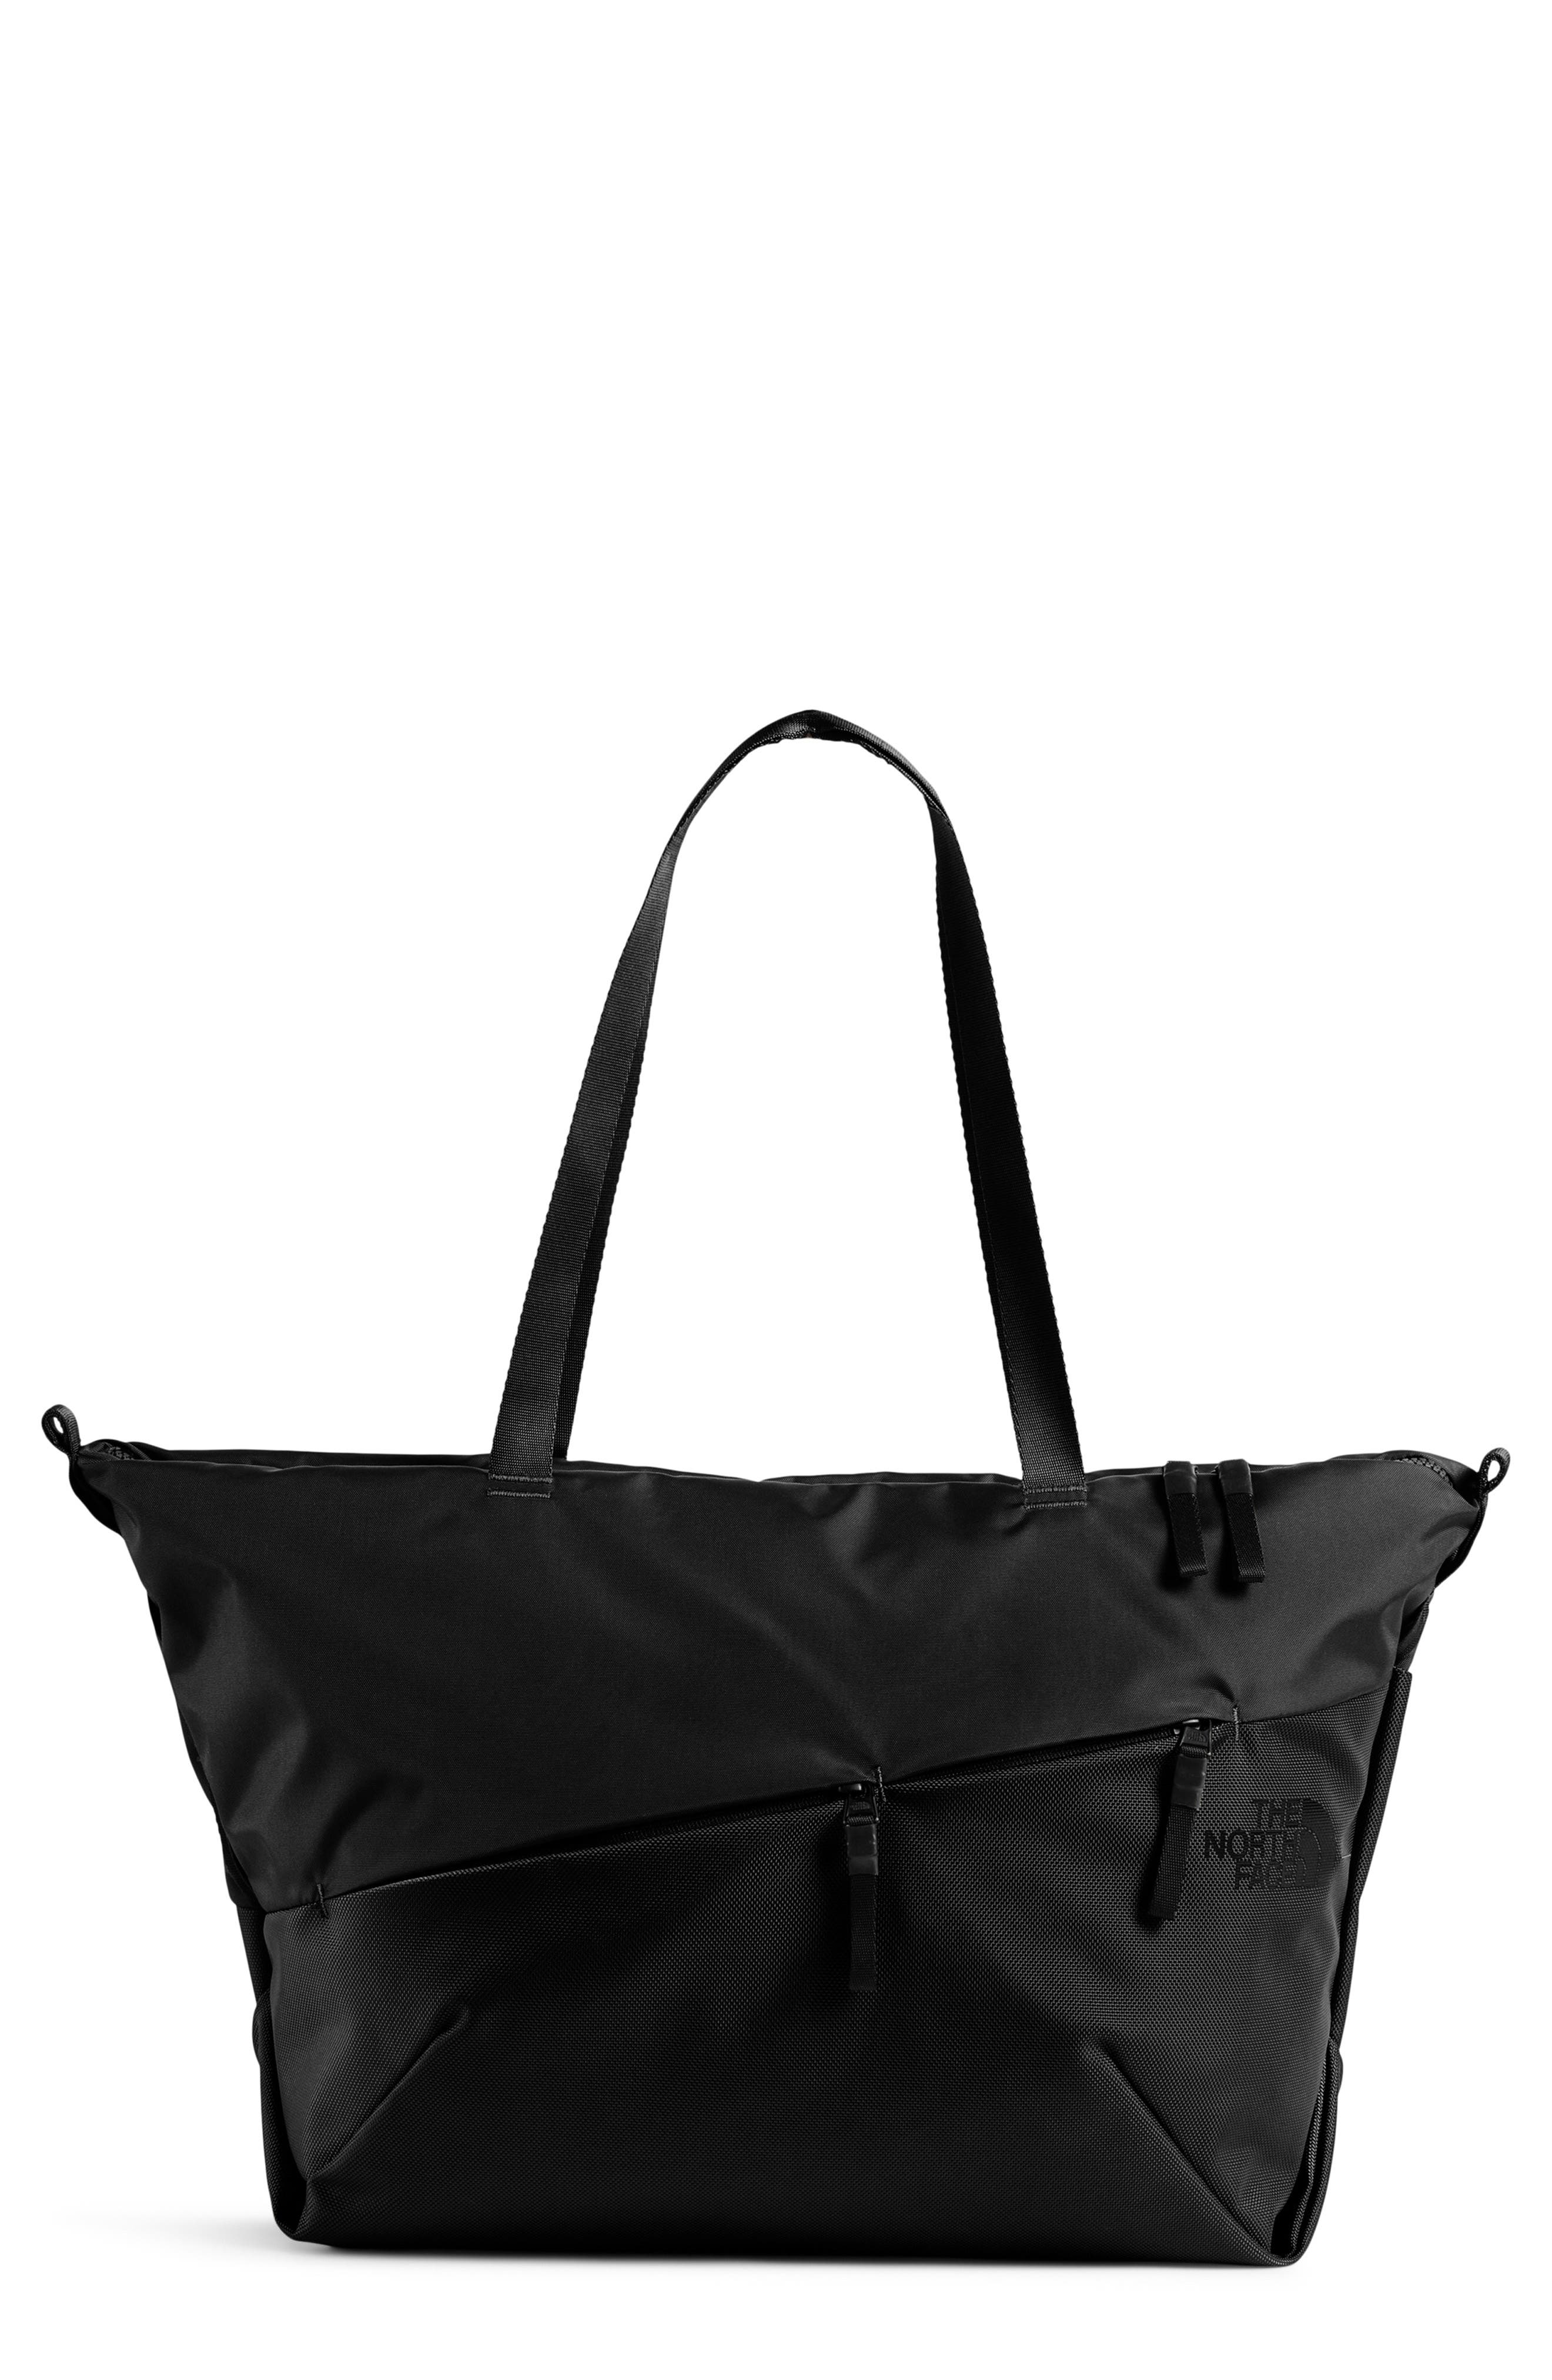 THE NORTH FACE Electra Large Tote, Main, color, 001